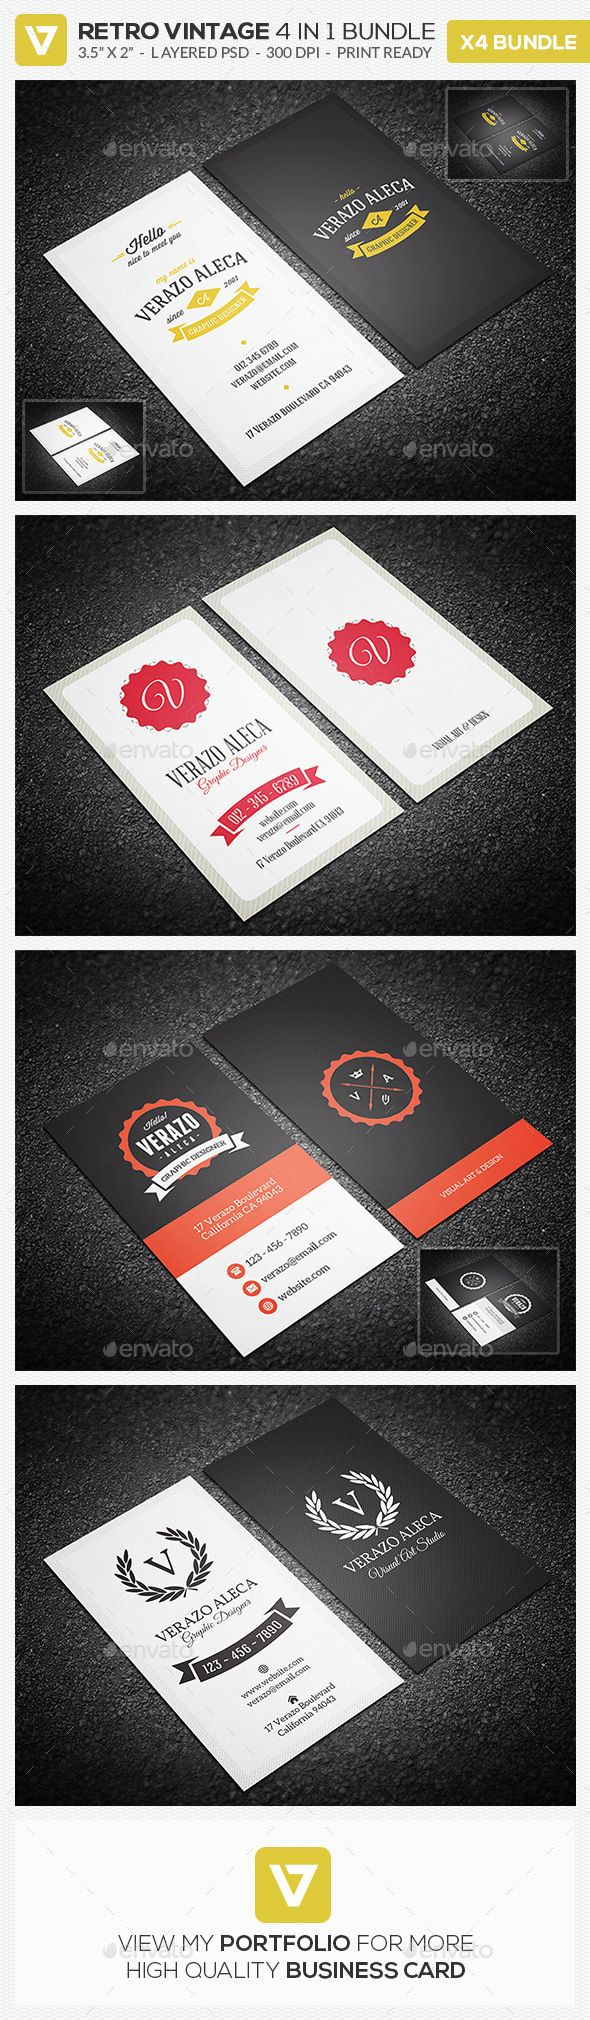 Best 25+ High quality business cards ideas on Pinterest | Buy ...